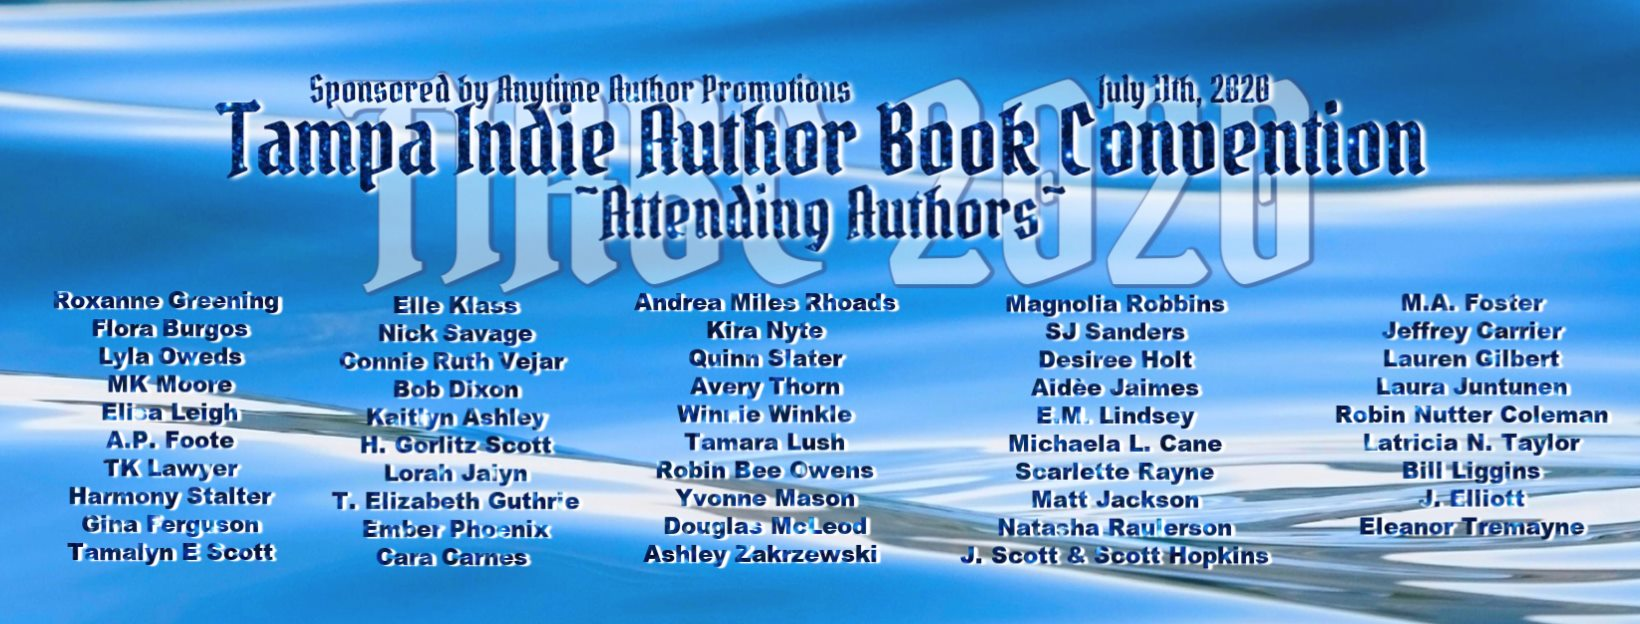 Tampa Indie Authors banner 2020